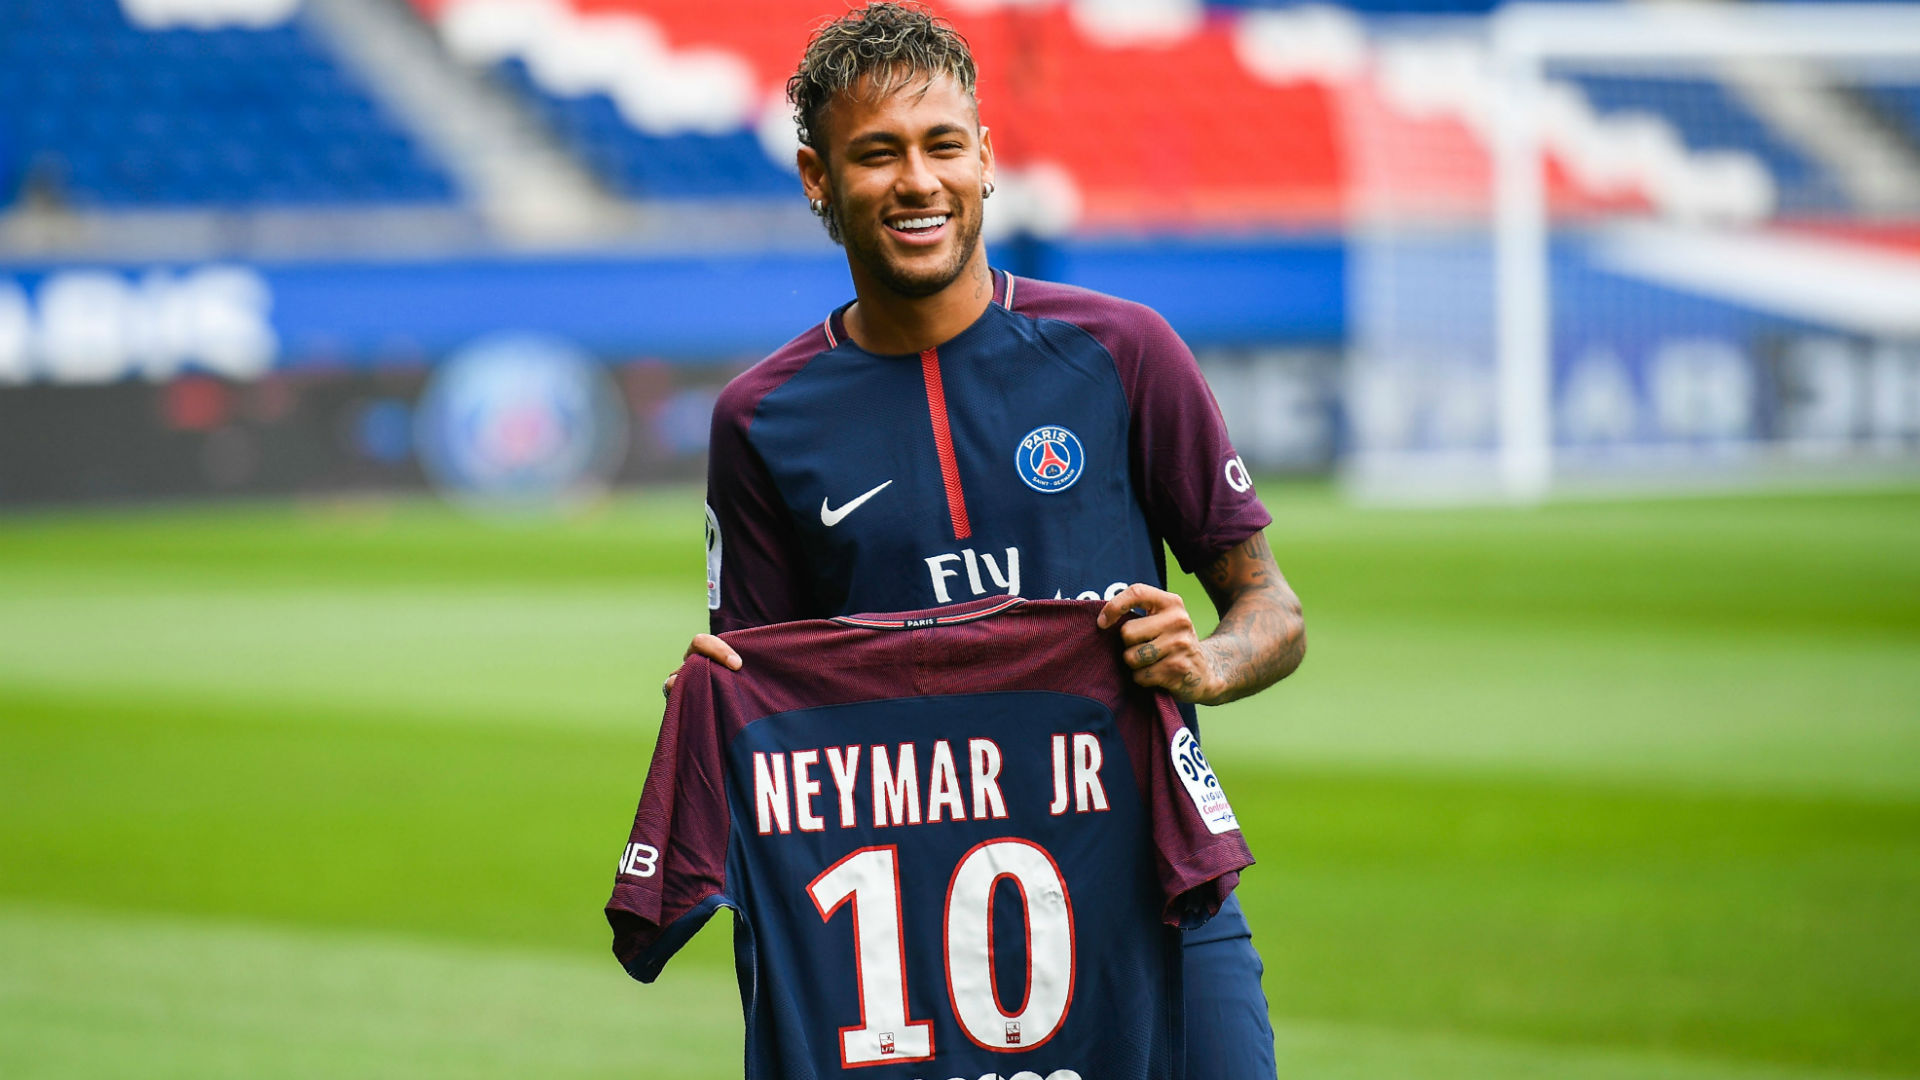 Neymar holding his PSG number 10 shirt